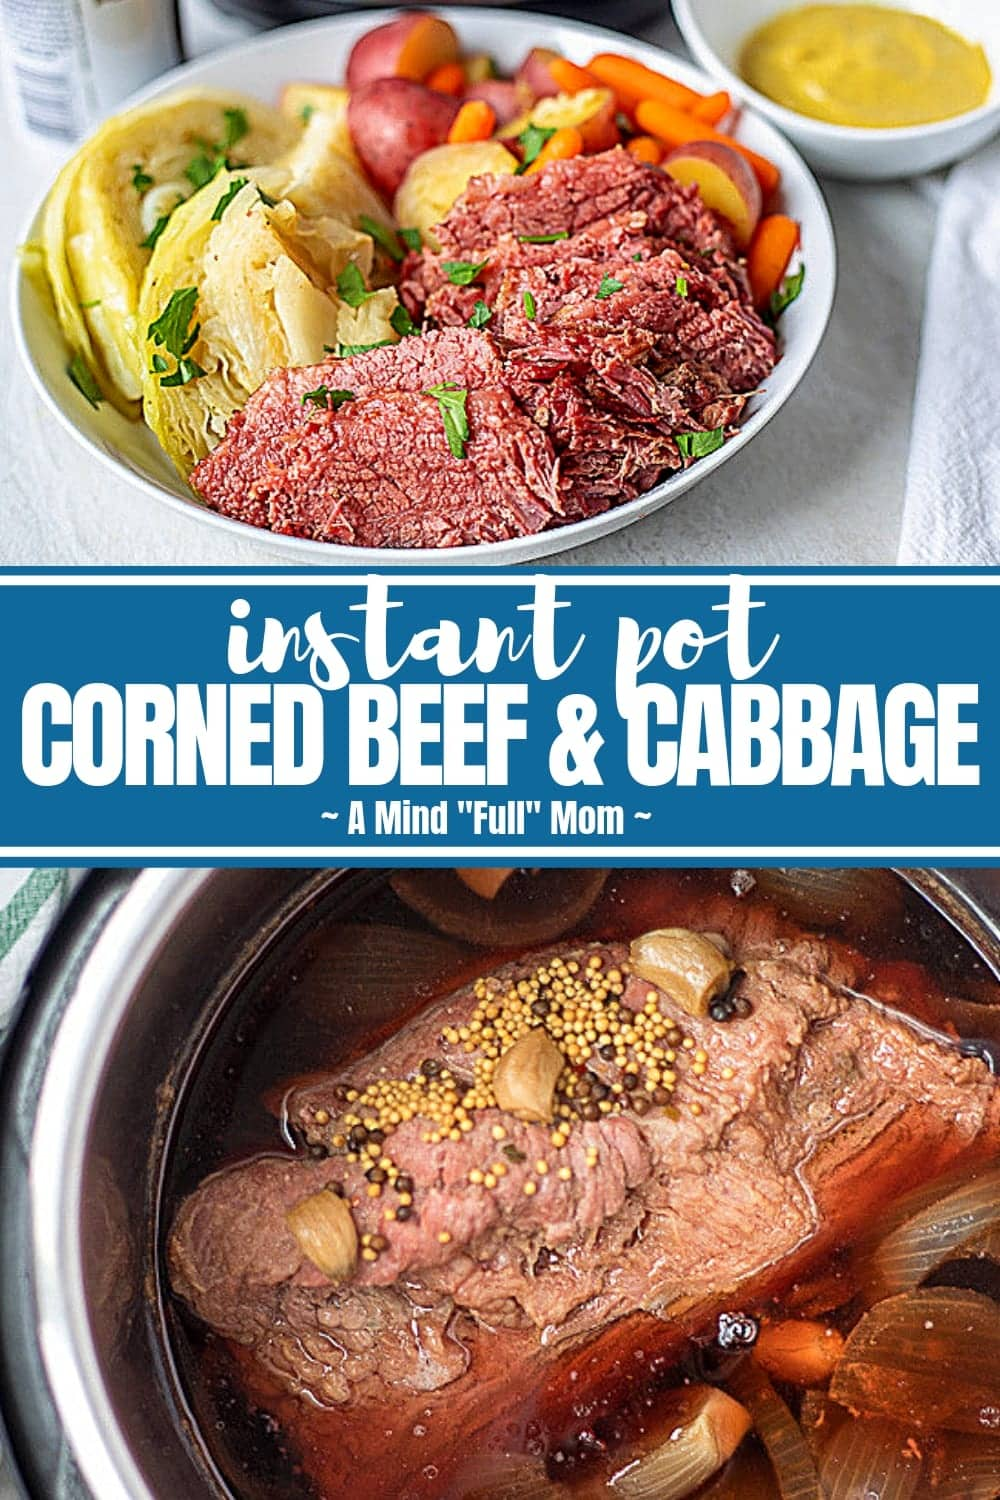 Instant Pot Corned Beef and Cabbage is the BEST way to make traditional corned beef with cabbage, potatoes, and carrots! The corned beef becomes perfectly tender and the vegetables are cooked until just tender for a delicious, easy meal.#instantpot #cornedbeef